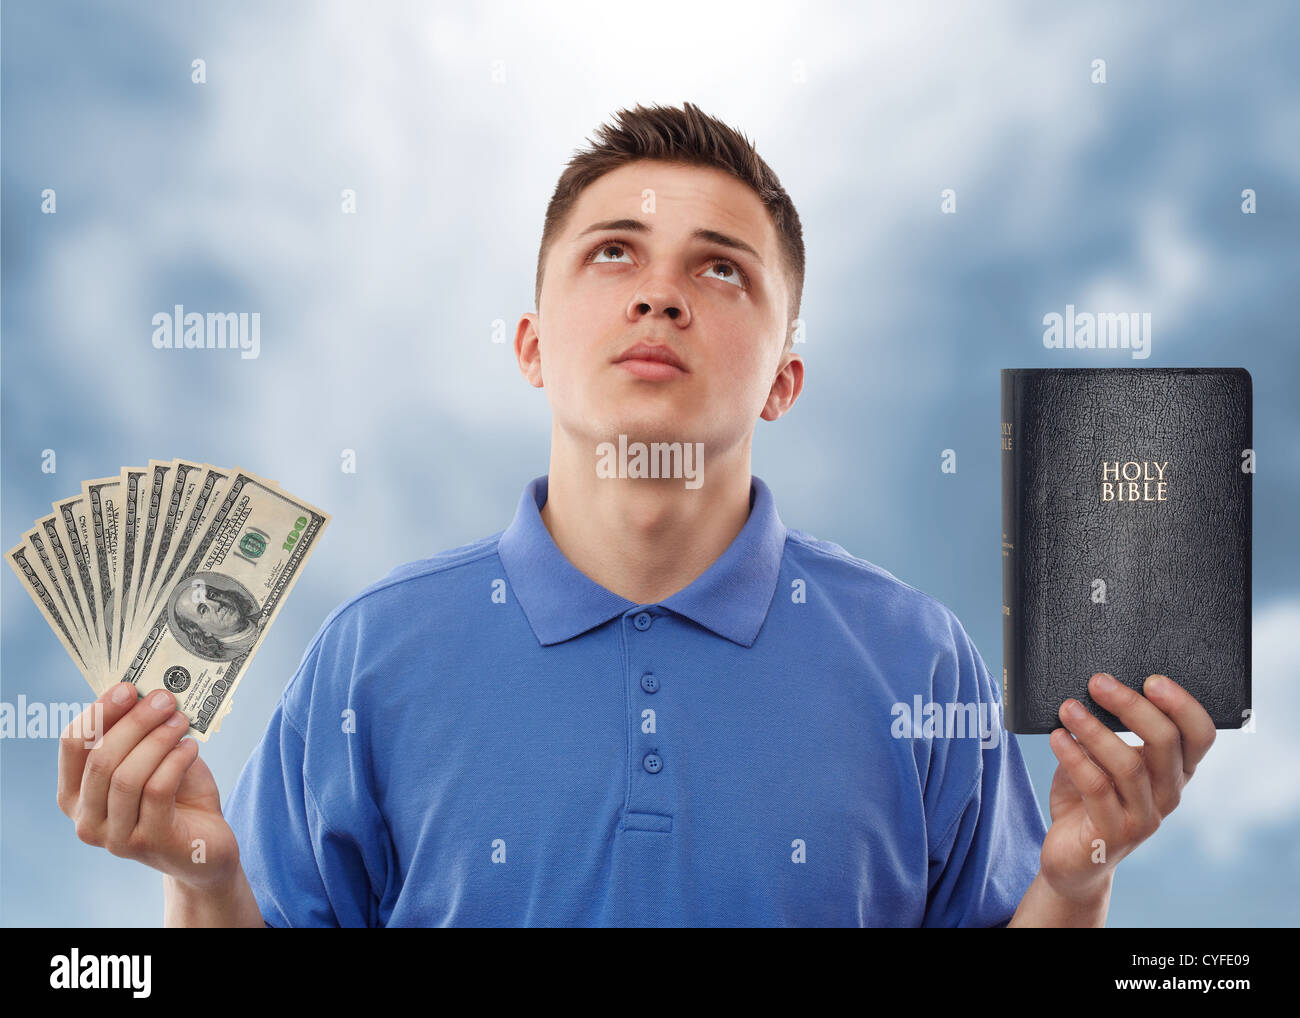 Young man asking for help to choose between God and money. 'No man is able to be a servant to two masters.' - Stock Image